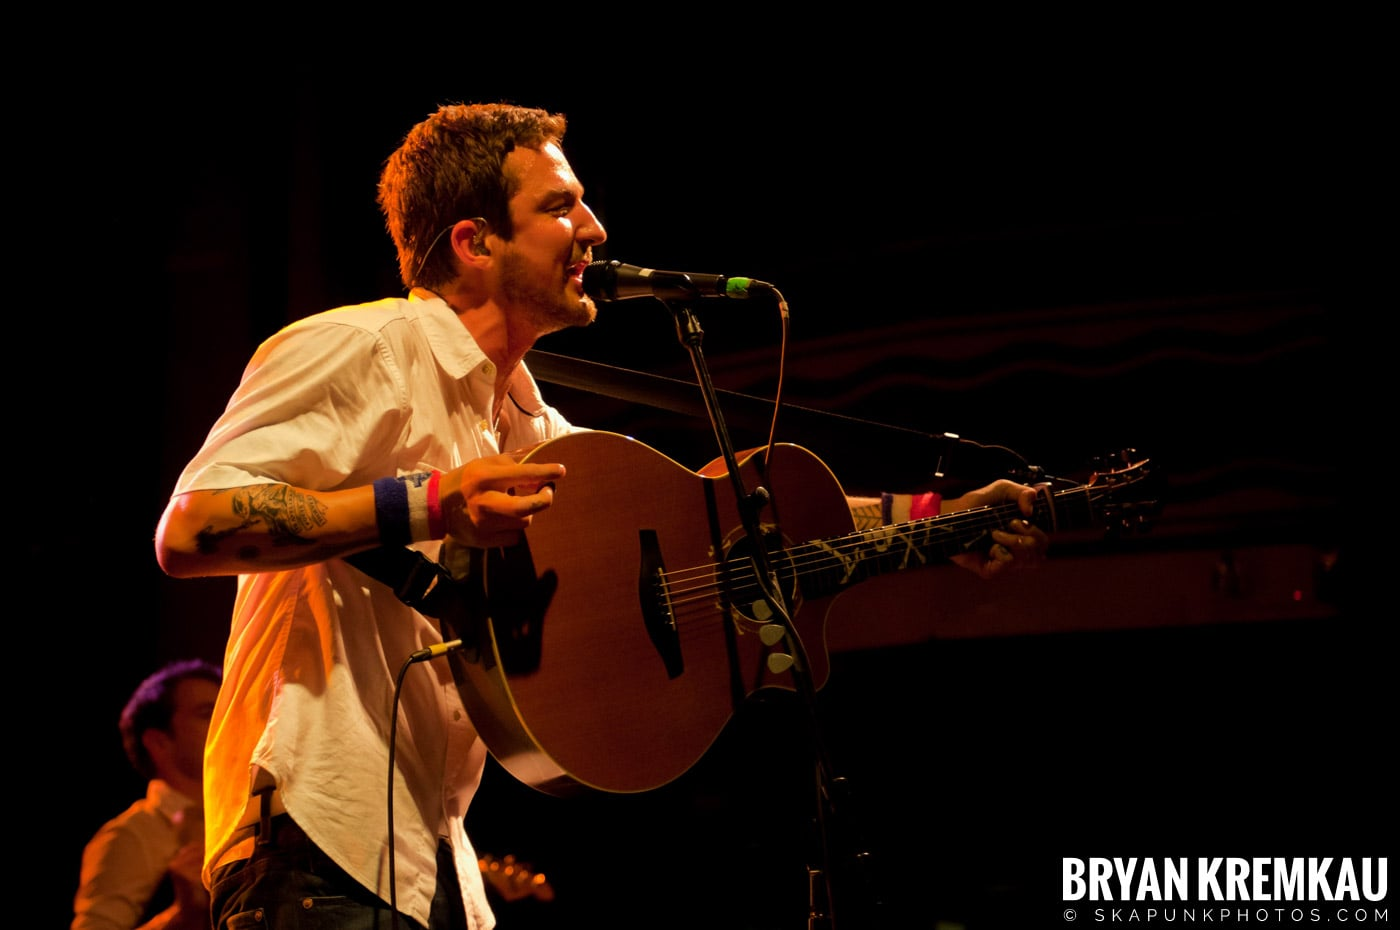 Frank Turner & The Sleeping Souls @ Webster Hall, NYC - 9.29.12 (2)